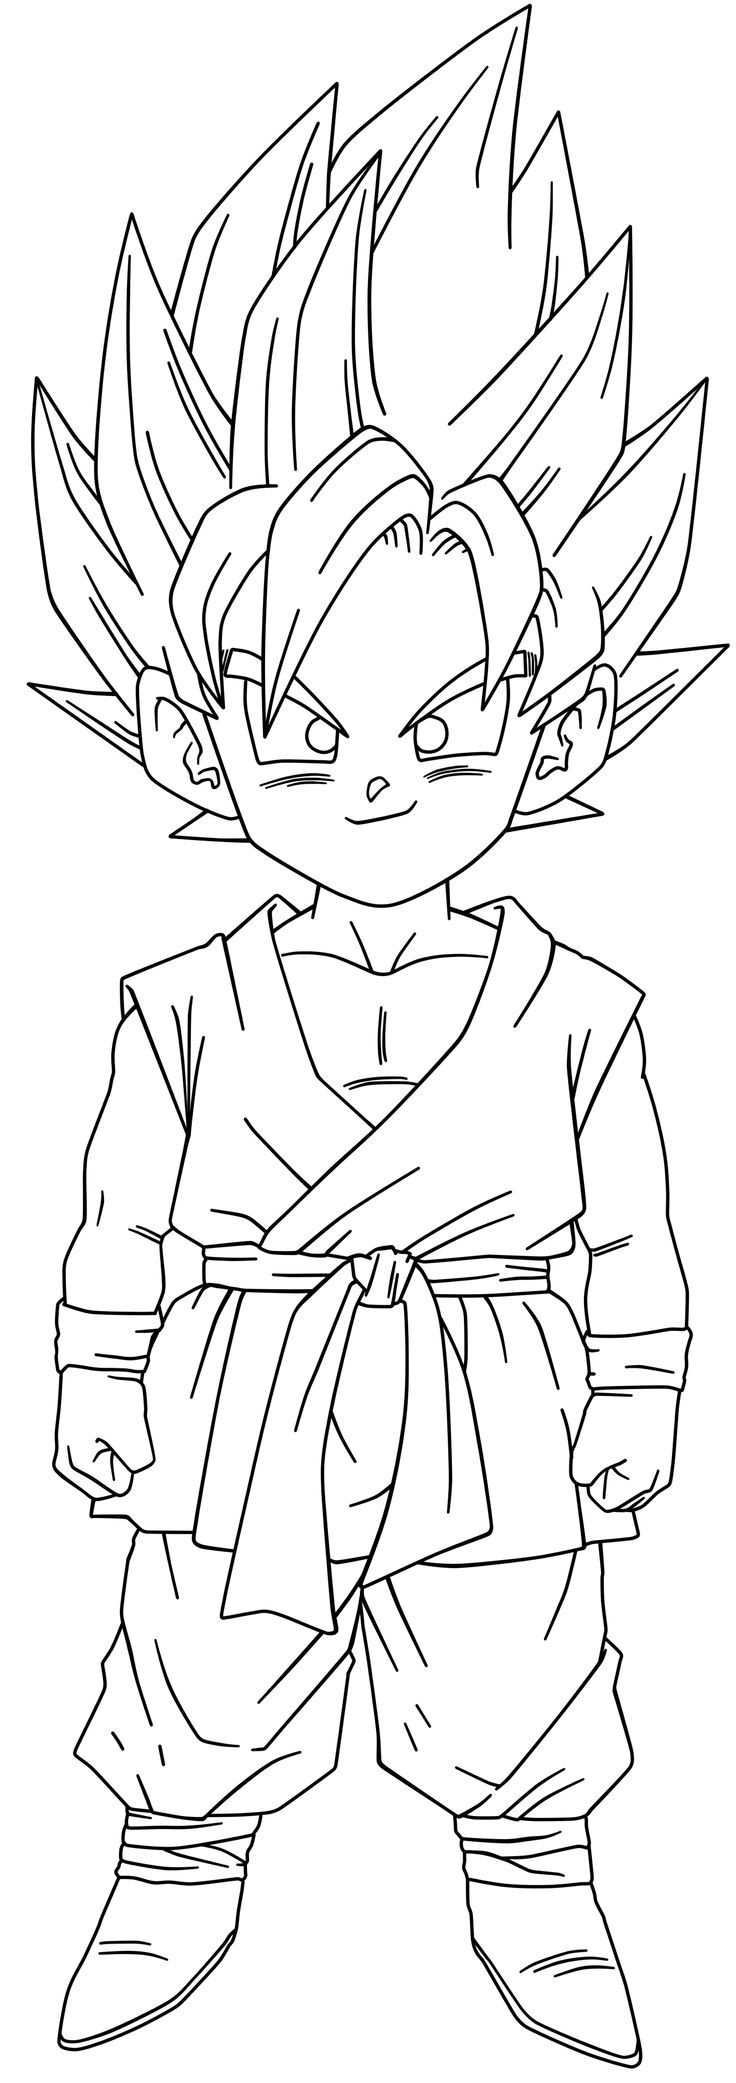 Goku Coloring Pages Coloring Pages Coloring Dragon Ball Gt ...